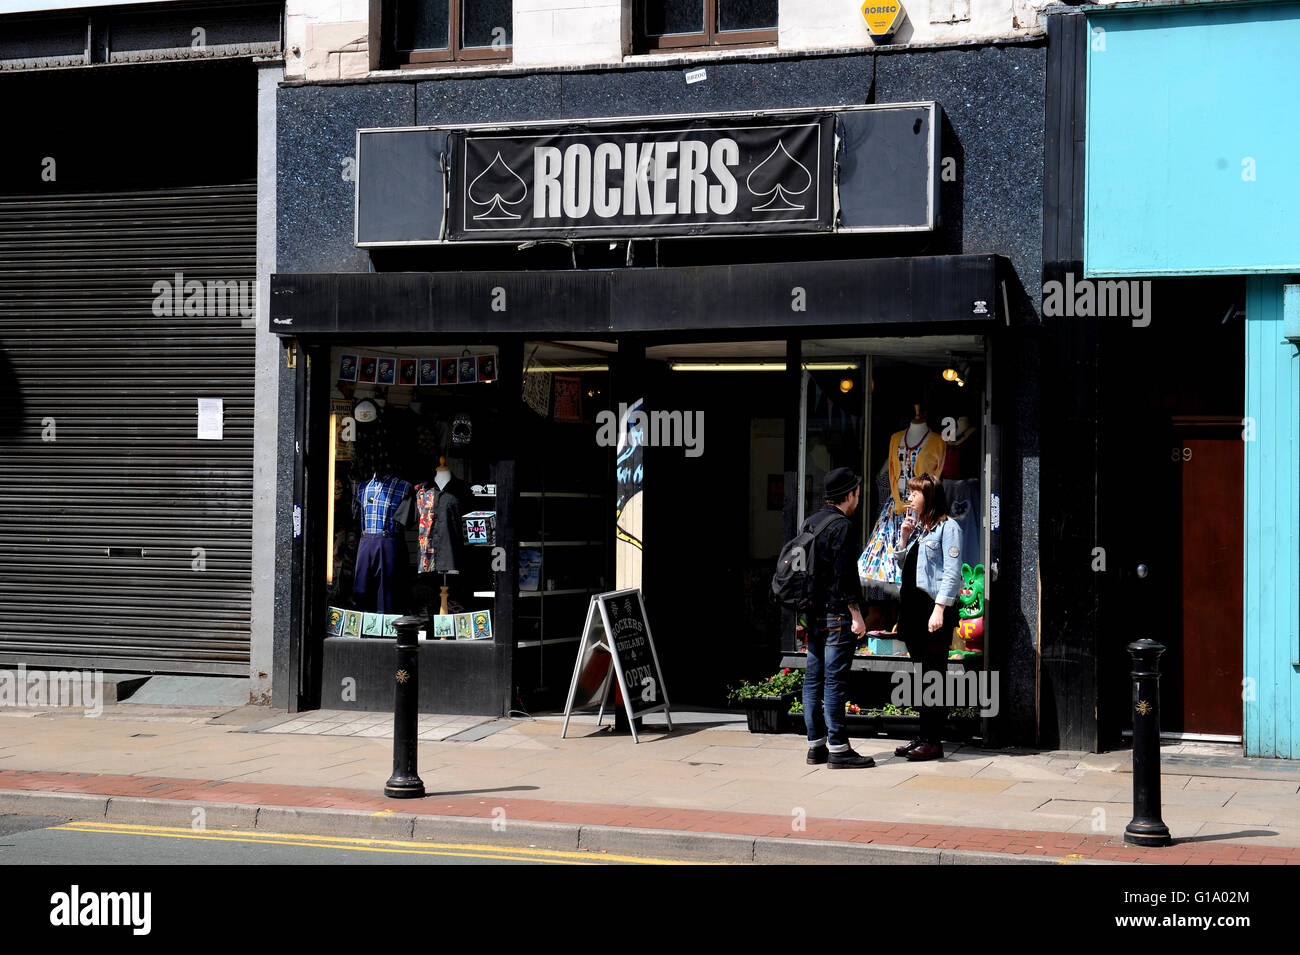 Rockers clothes shop, Oldham Street, Northern Quarter, Manchester, Tuesday May 10, 2016. - Stock Image